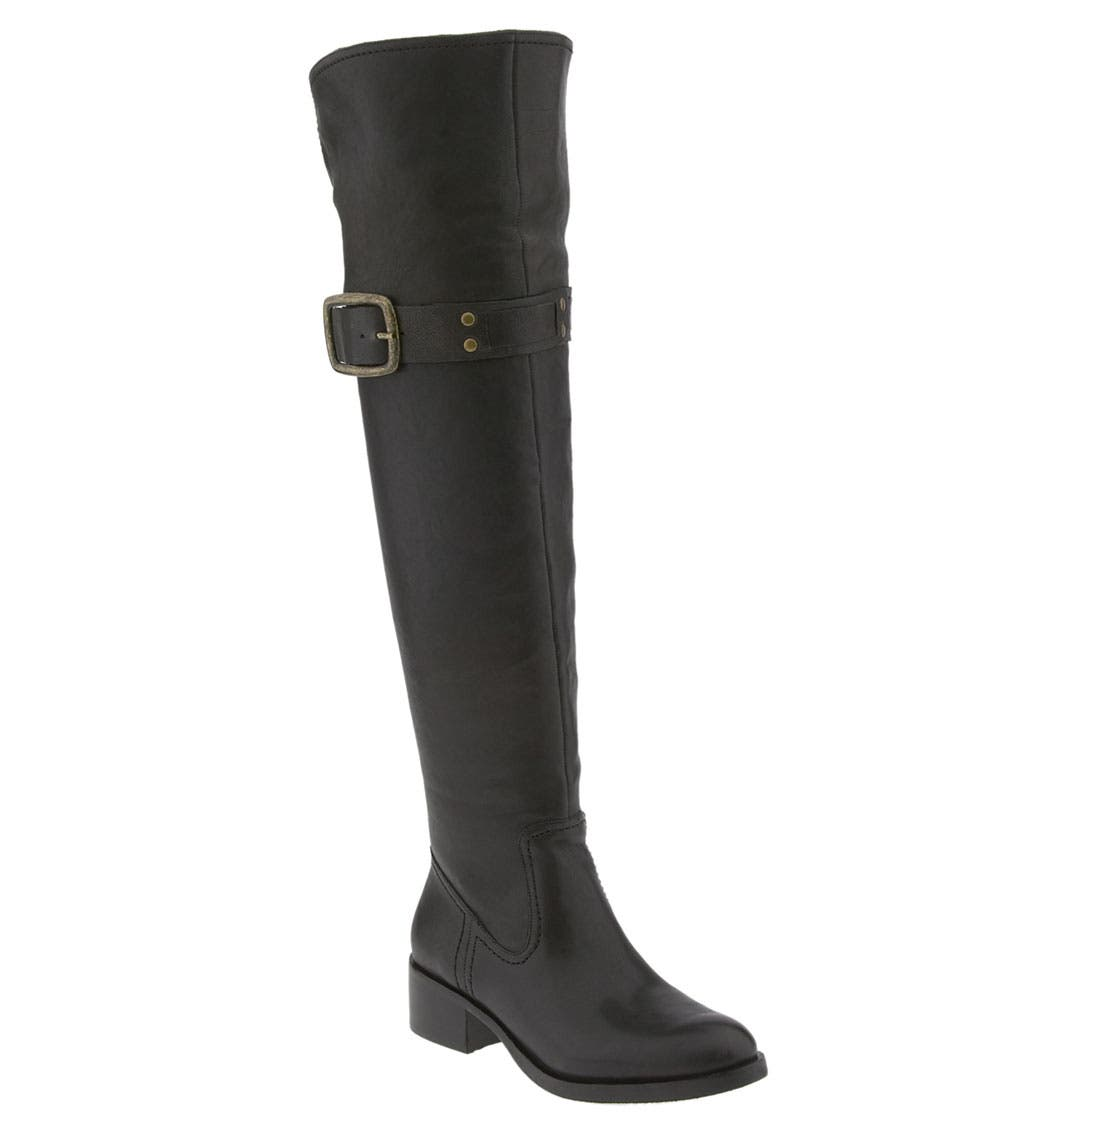 JESSICA SIMPSON, 'Clancey' Over the Knee Boot, Main thumbnail 1, color, 001